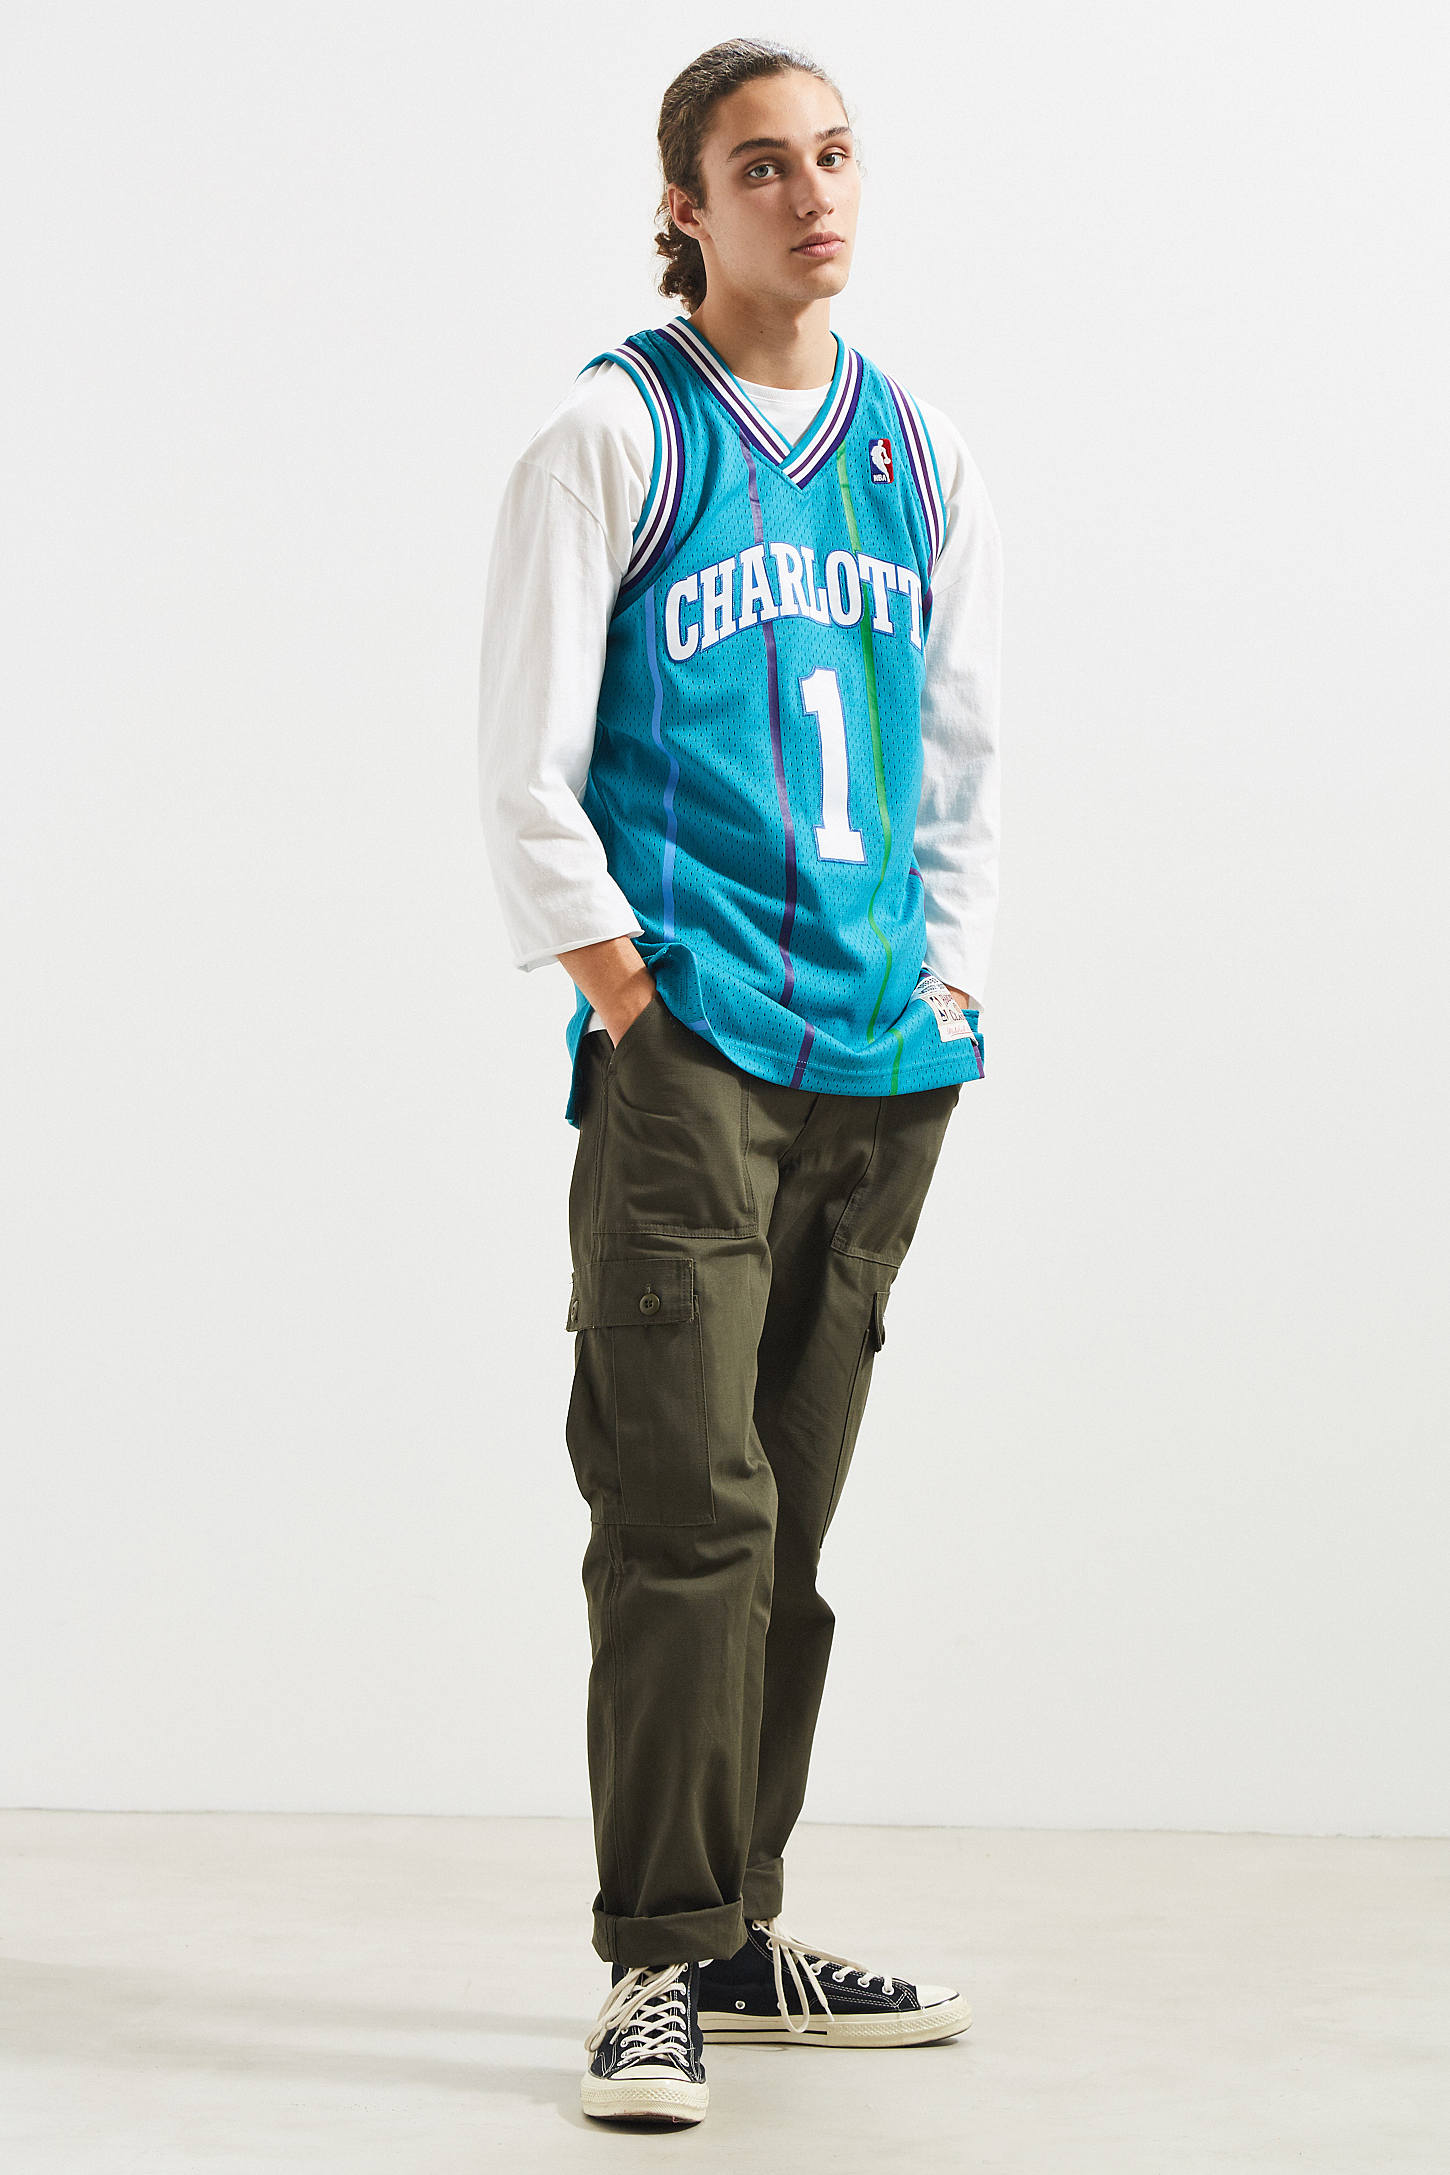 Mitchell & Ness Charlotte Hornets Muggsy Bogues 92 – 93